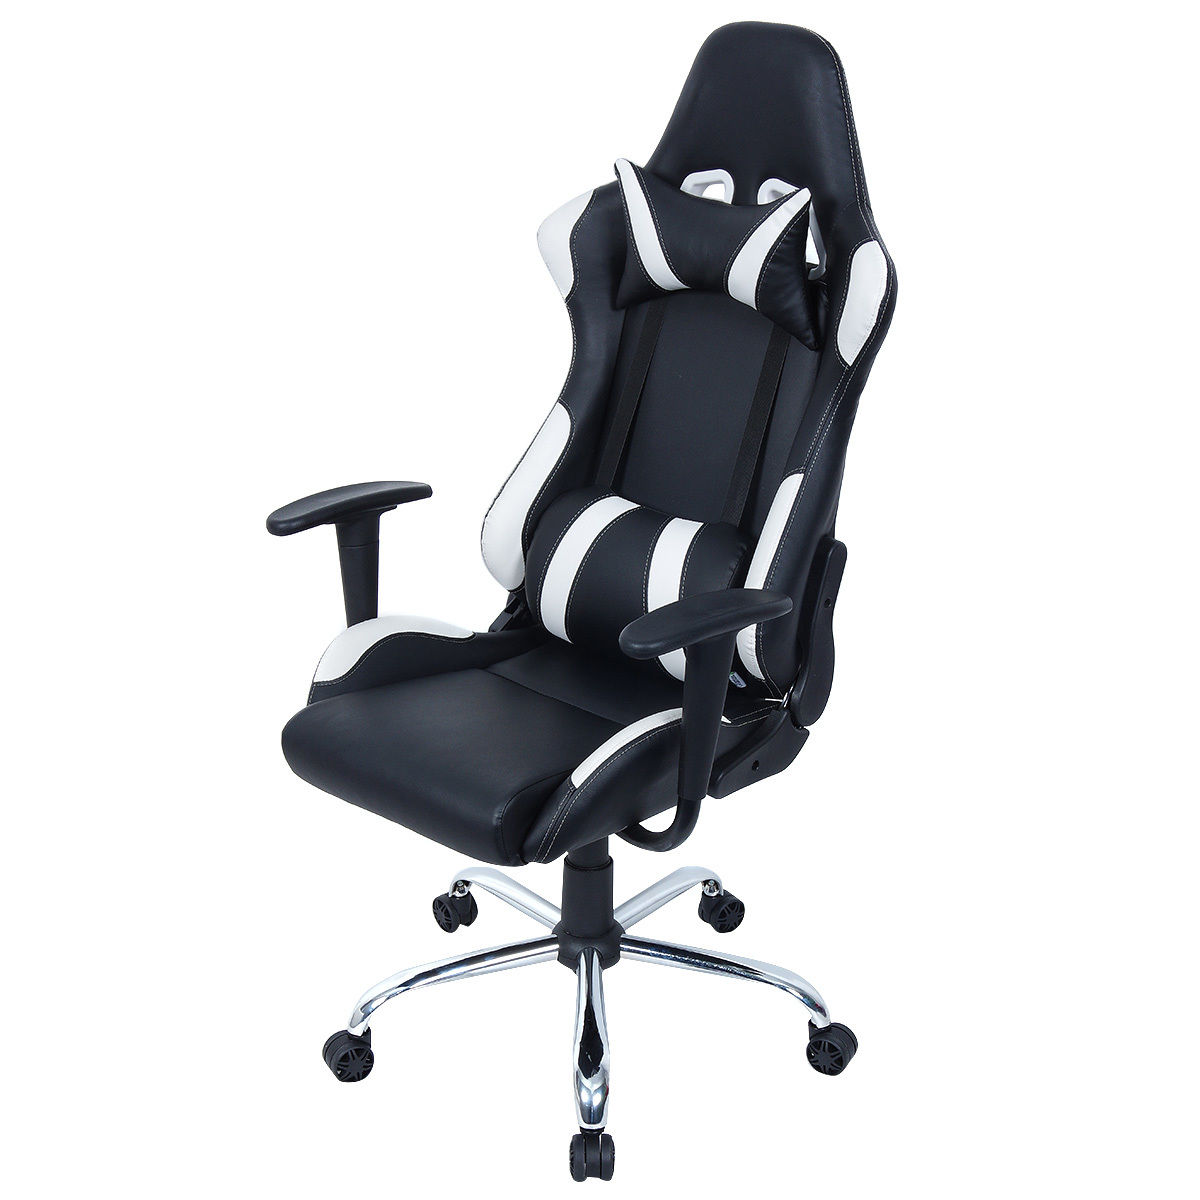 costway black and white gaming chair office chair race computer